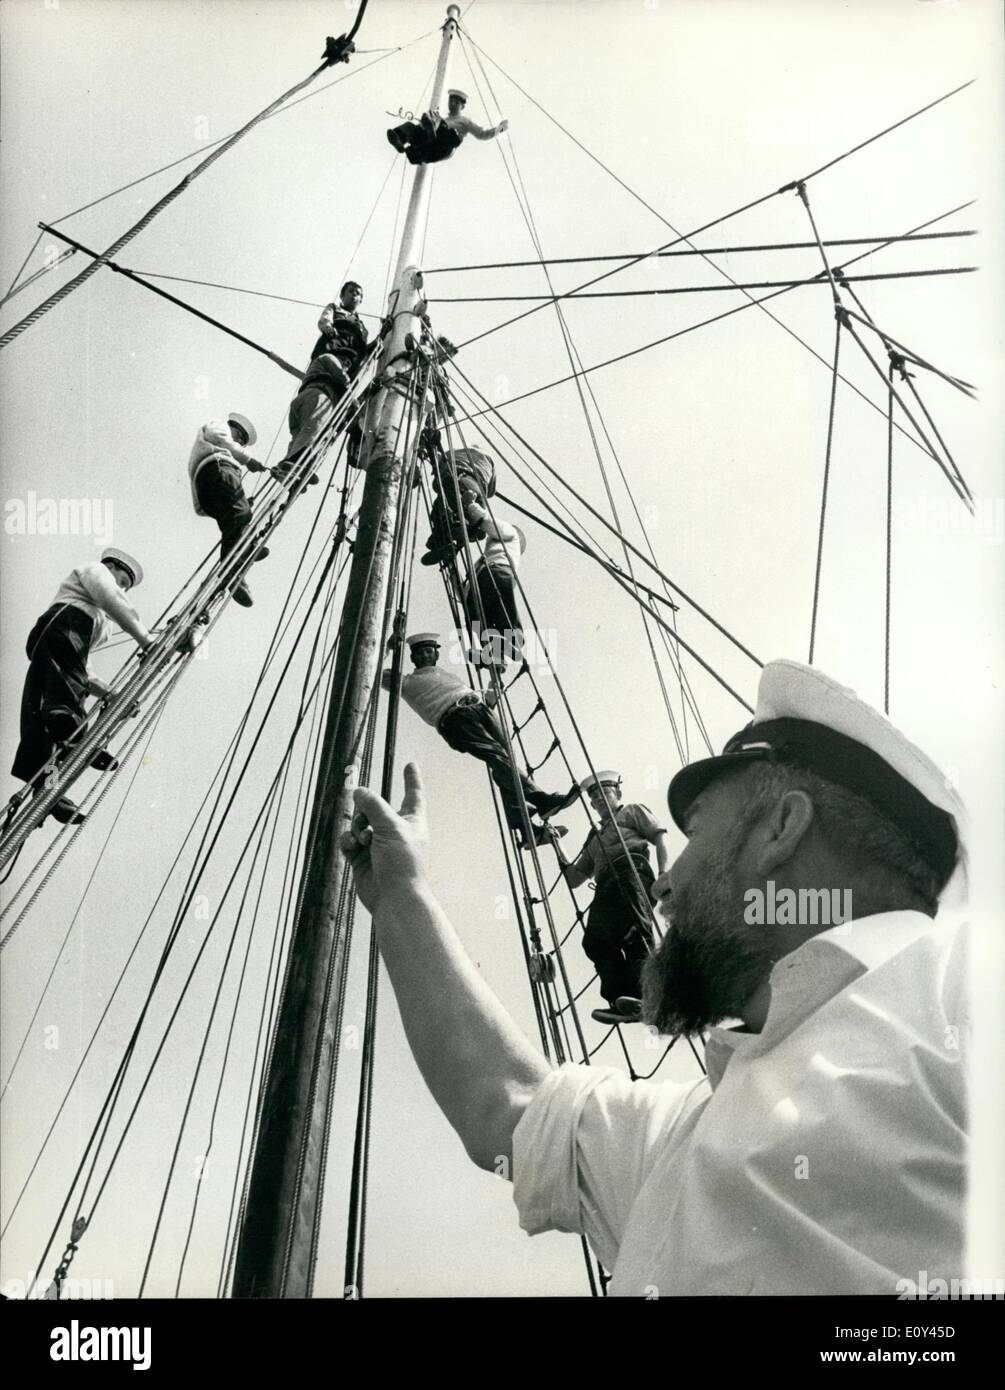 Jul. 07, 1968 - Sea cadet crops entry for the tall ships race. Sea Cadets were at Chatham today training aboard the T.S. Kenya Jacaranda, 94-ton ex-Brixham trawler - a Sea Cadet Crops entry in the forthcoming Tall Ships sailing race, from Harwich to Kristiansand, Norway. Photo Shows The Kenya Jacaranda's captain, LT. Comm. Morin Scott - issuing orders to the young Sea Carets high up the mast at Chatham today. - Stock Image